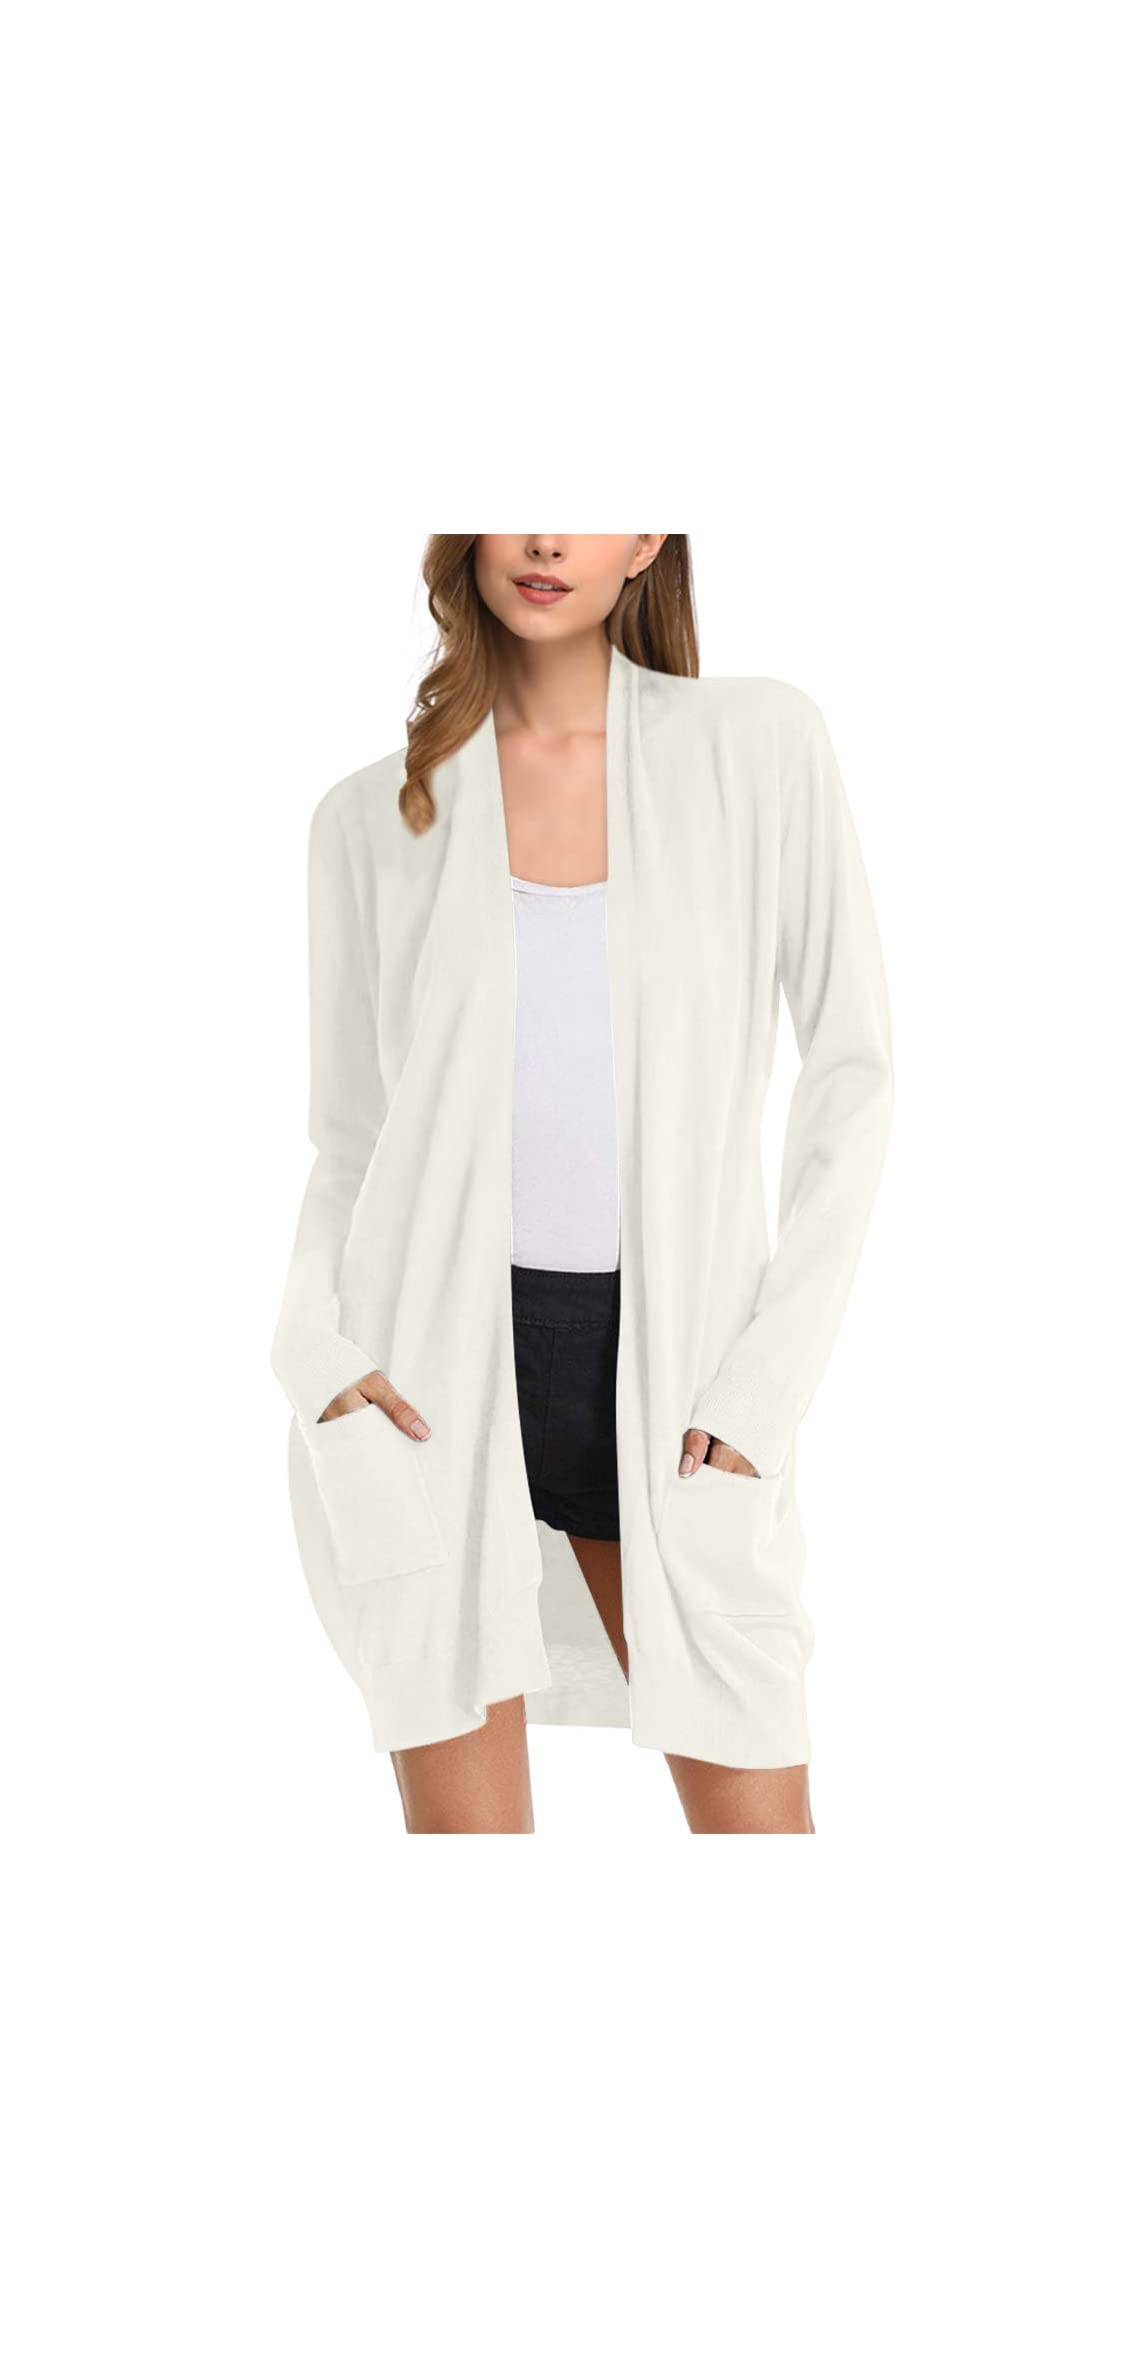 Women Solid Open Front Long Knited Cardigan Sweater